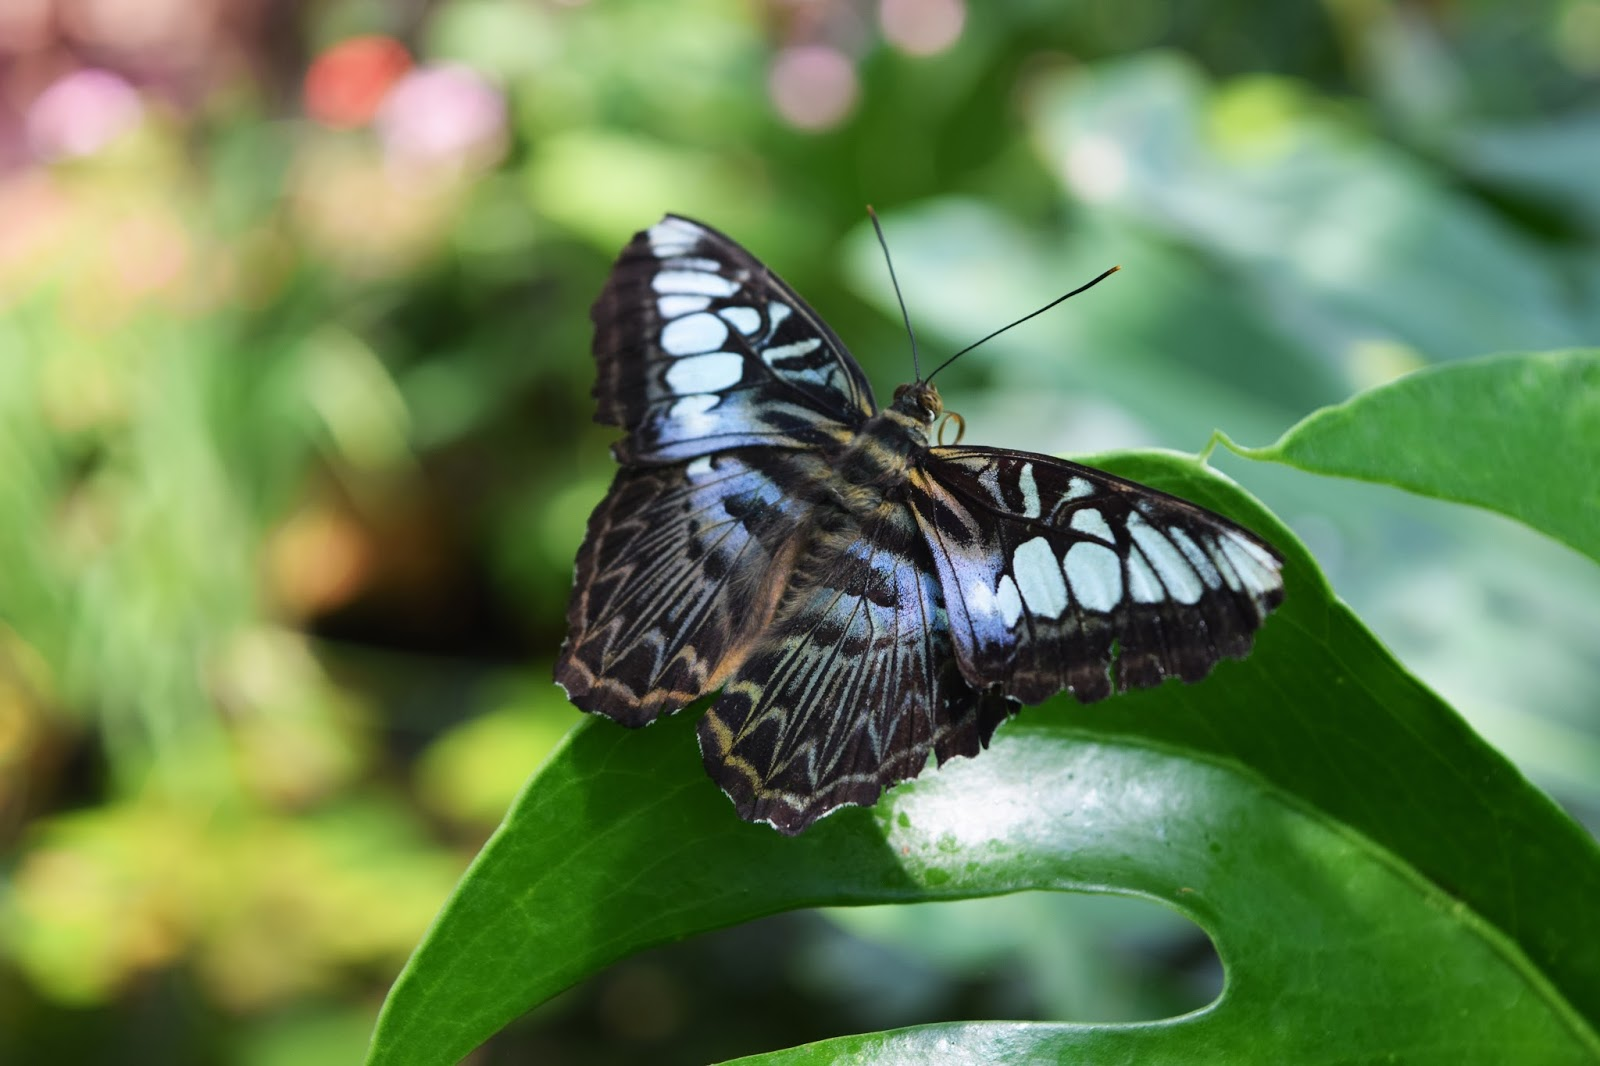 a blue butterfly perched on a leaf